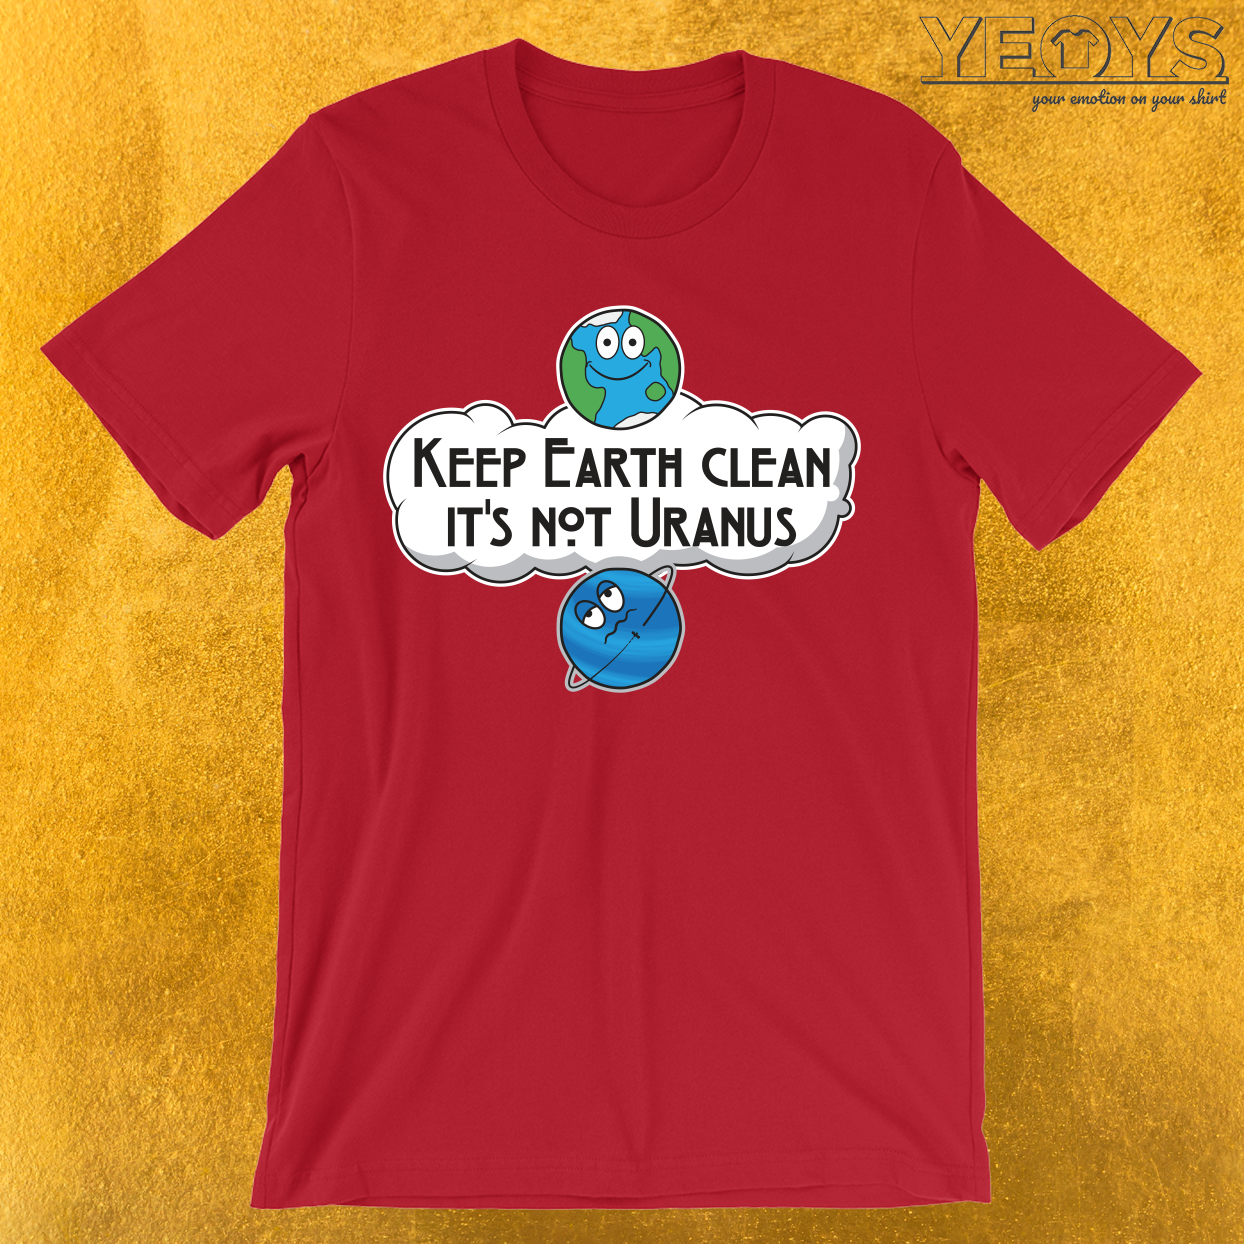 Keep Earth Clean It's Not Uranus T-Shirt